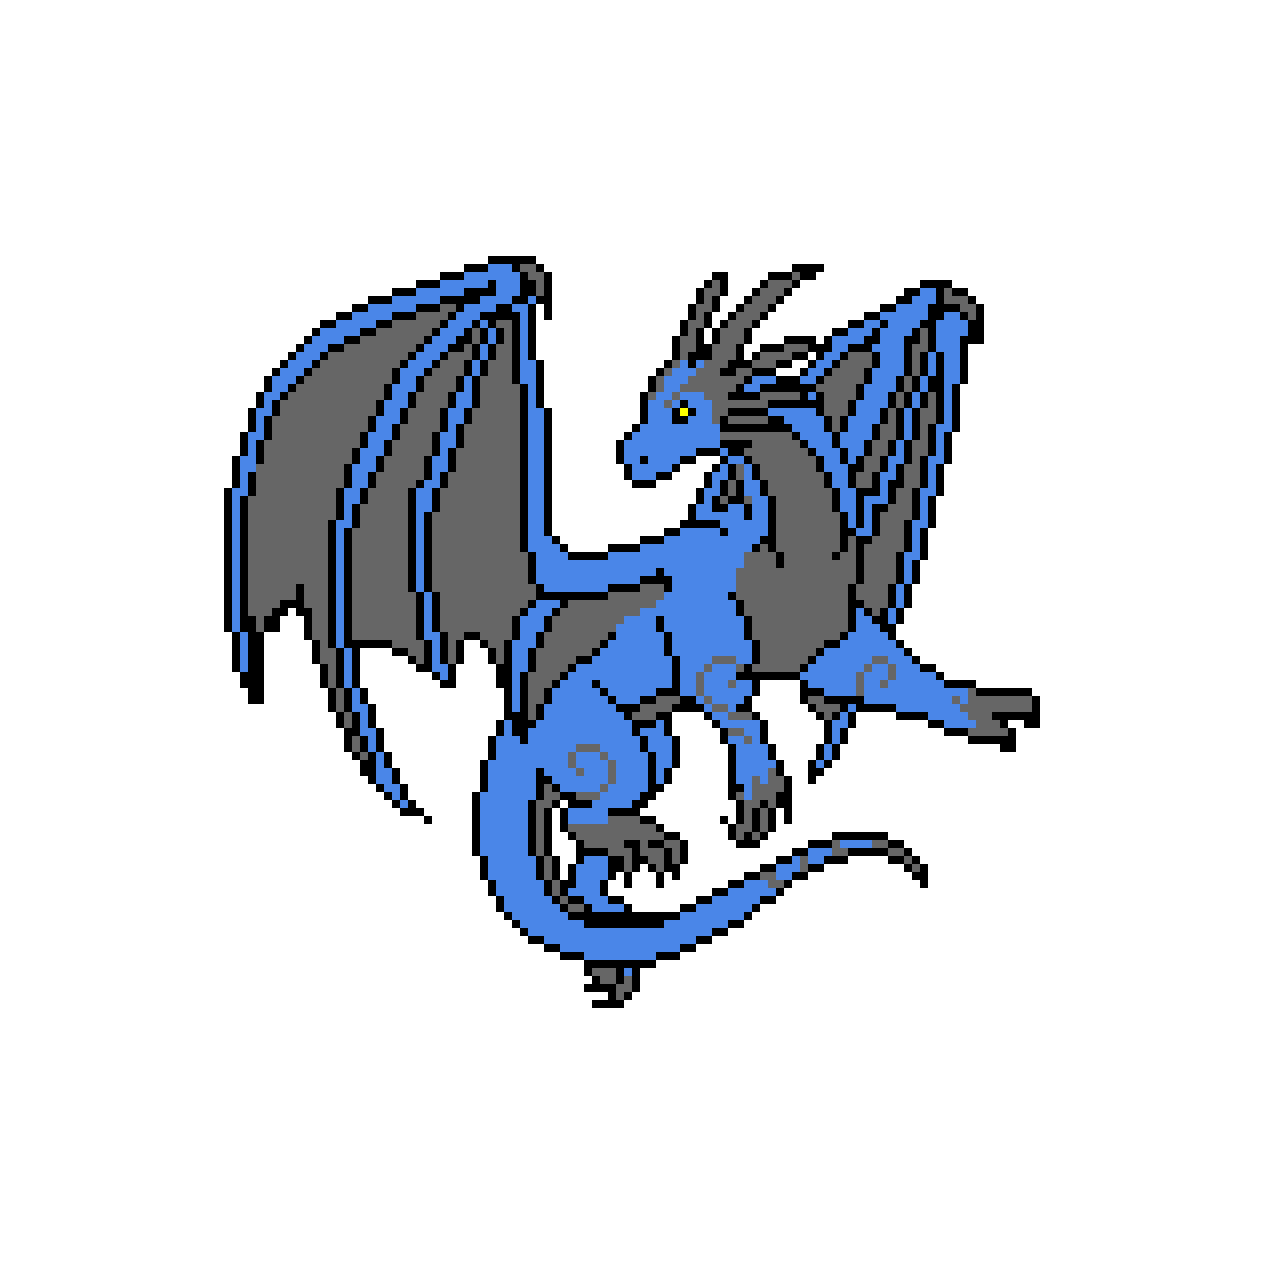 Saphira the dragon (suggestion by stinky_cats)